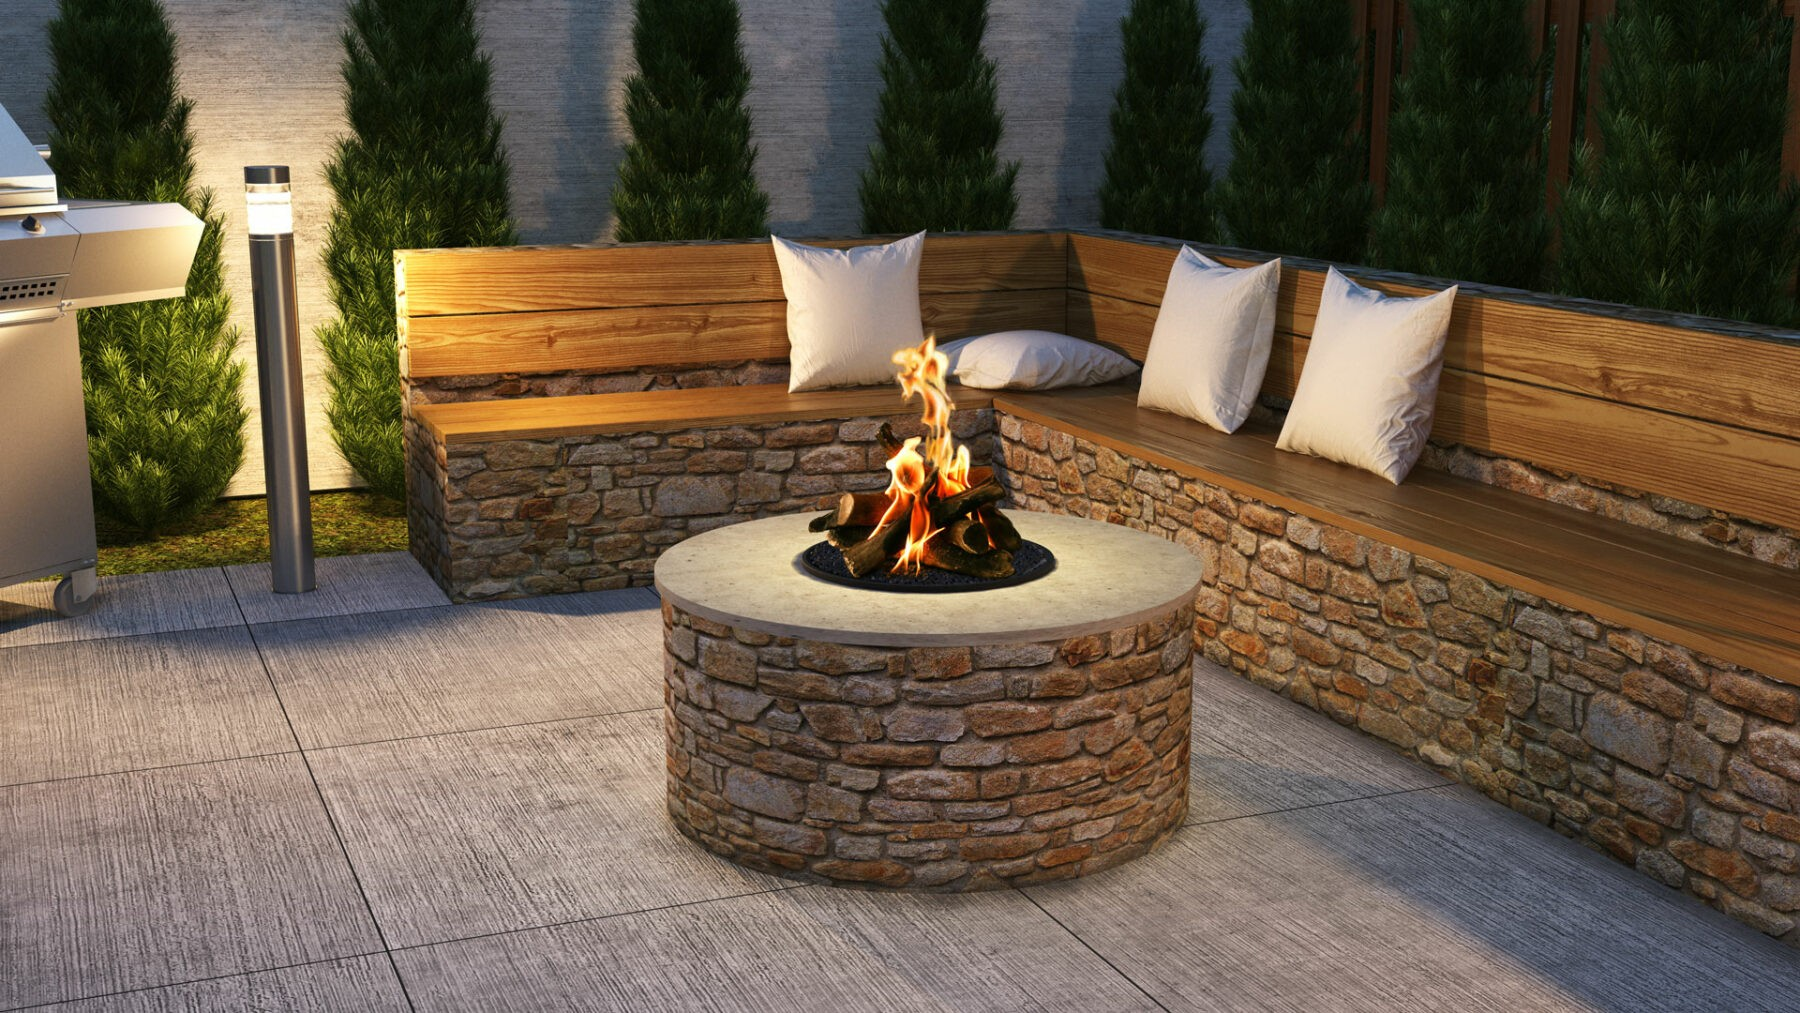 Chad-O-Chef Outdoor Fire Pit